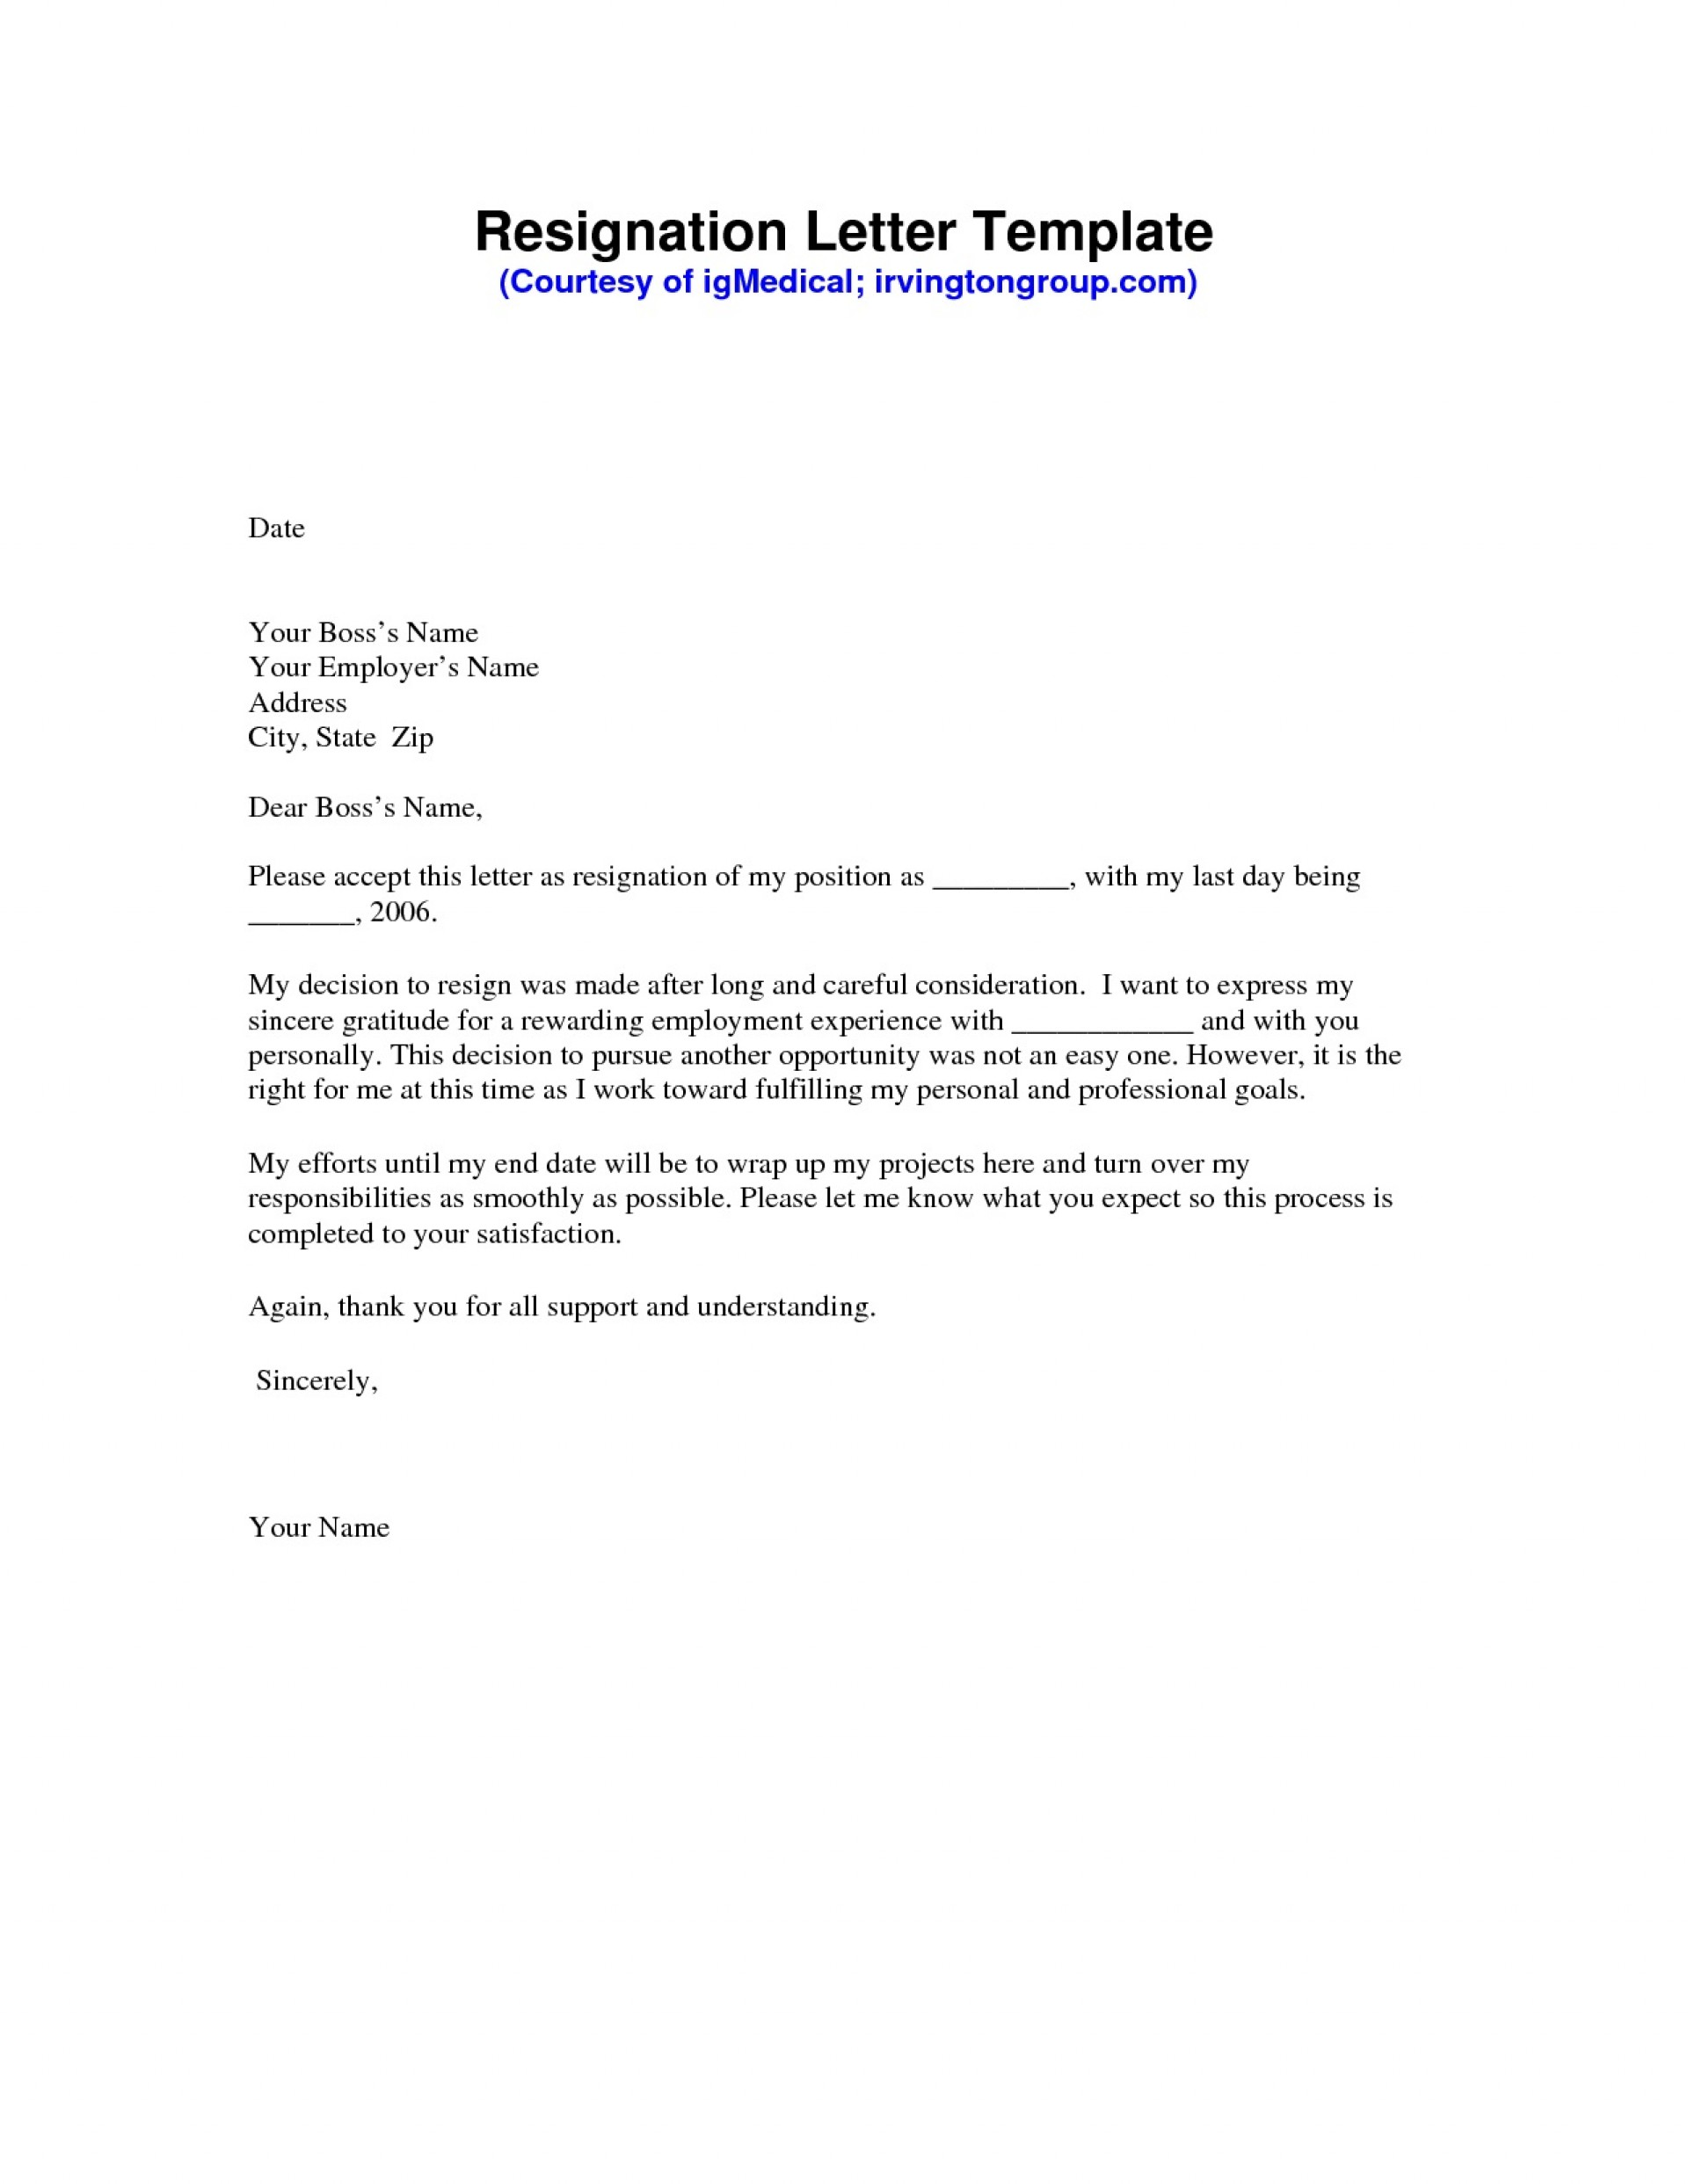 000 Remarkable Professional Resignation Letter Template Image  Best Format Pdf How To Write A1920